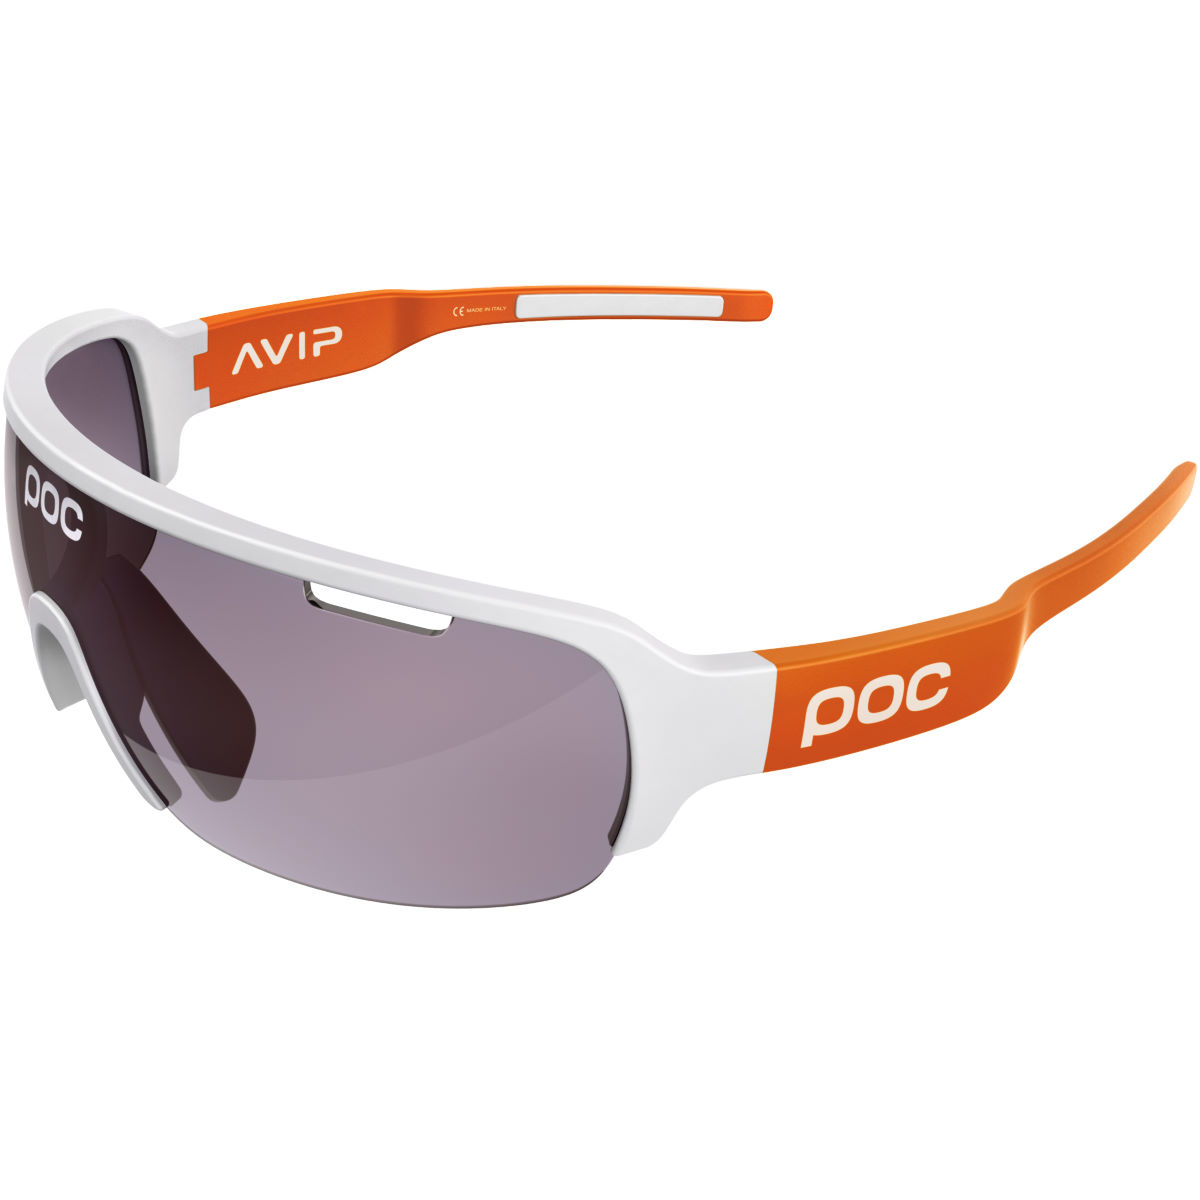 Poc Do Half Blade Clarity Avip Sunglasses - One Size White/orange